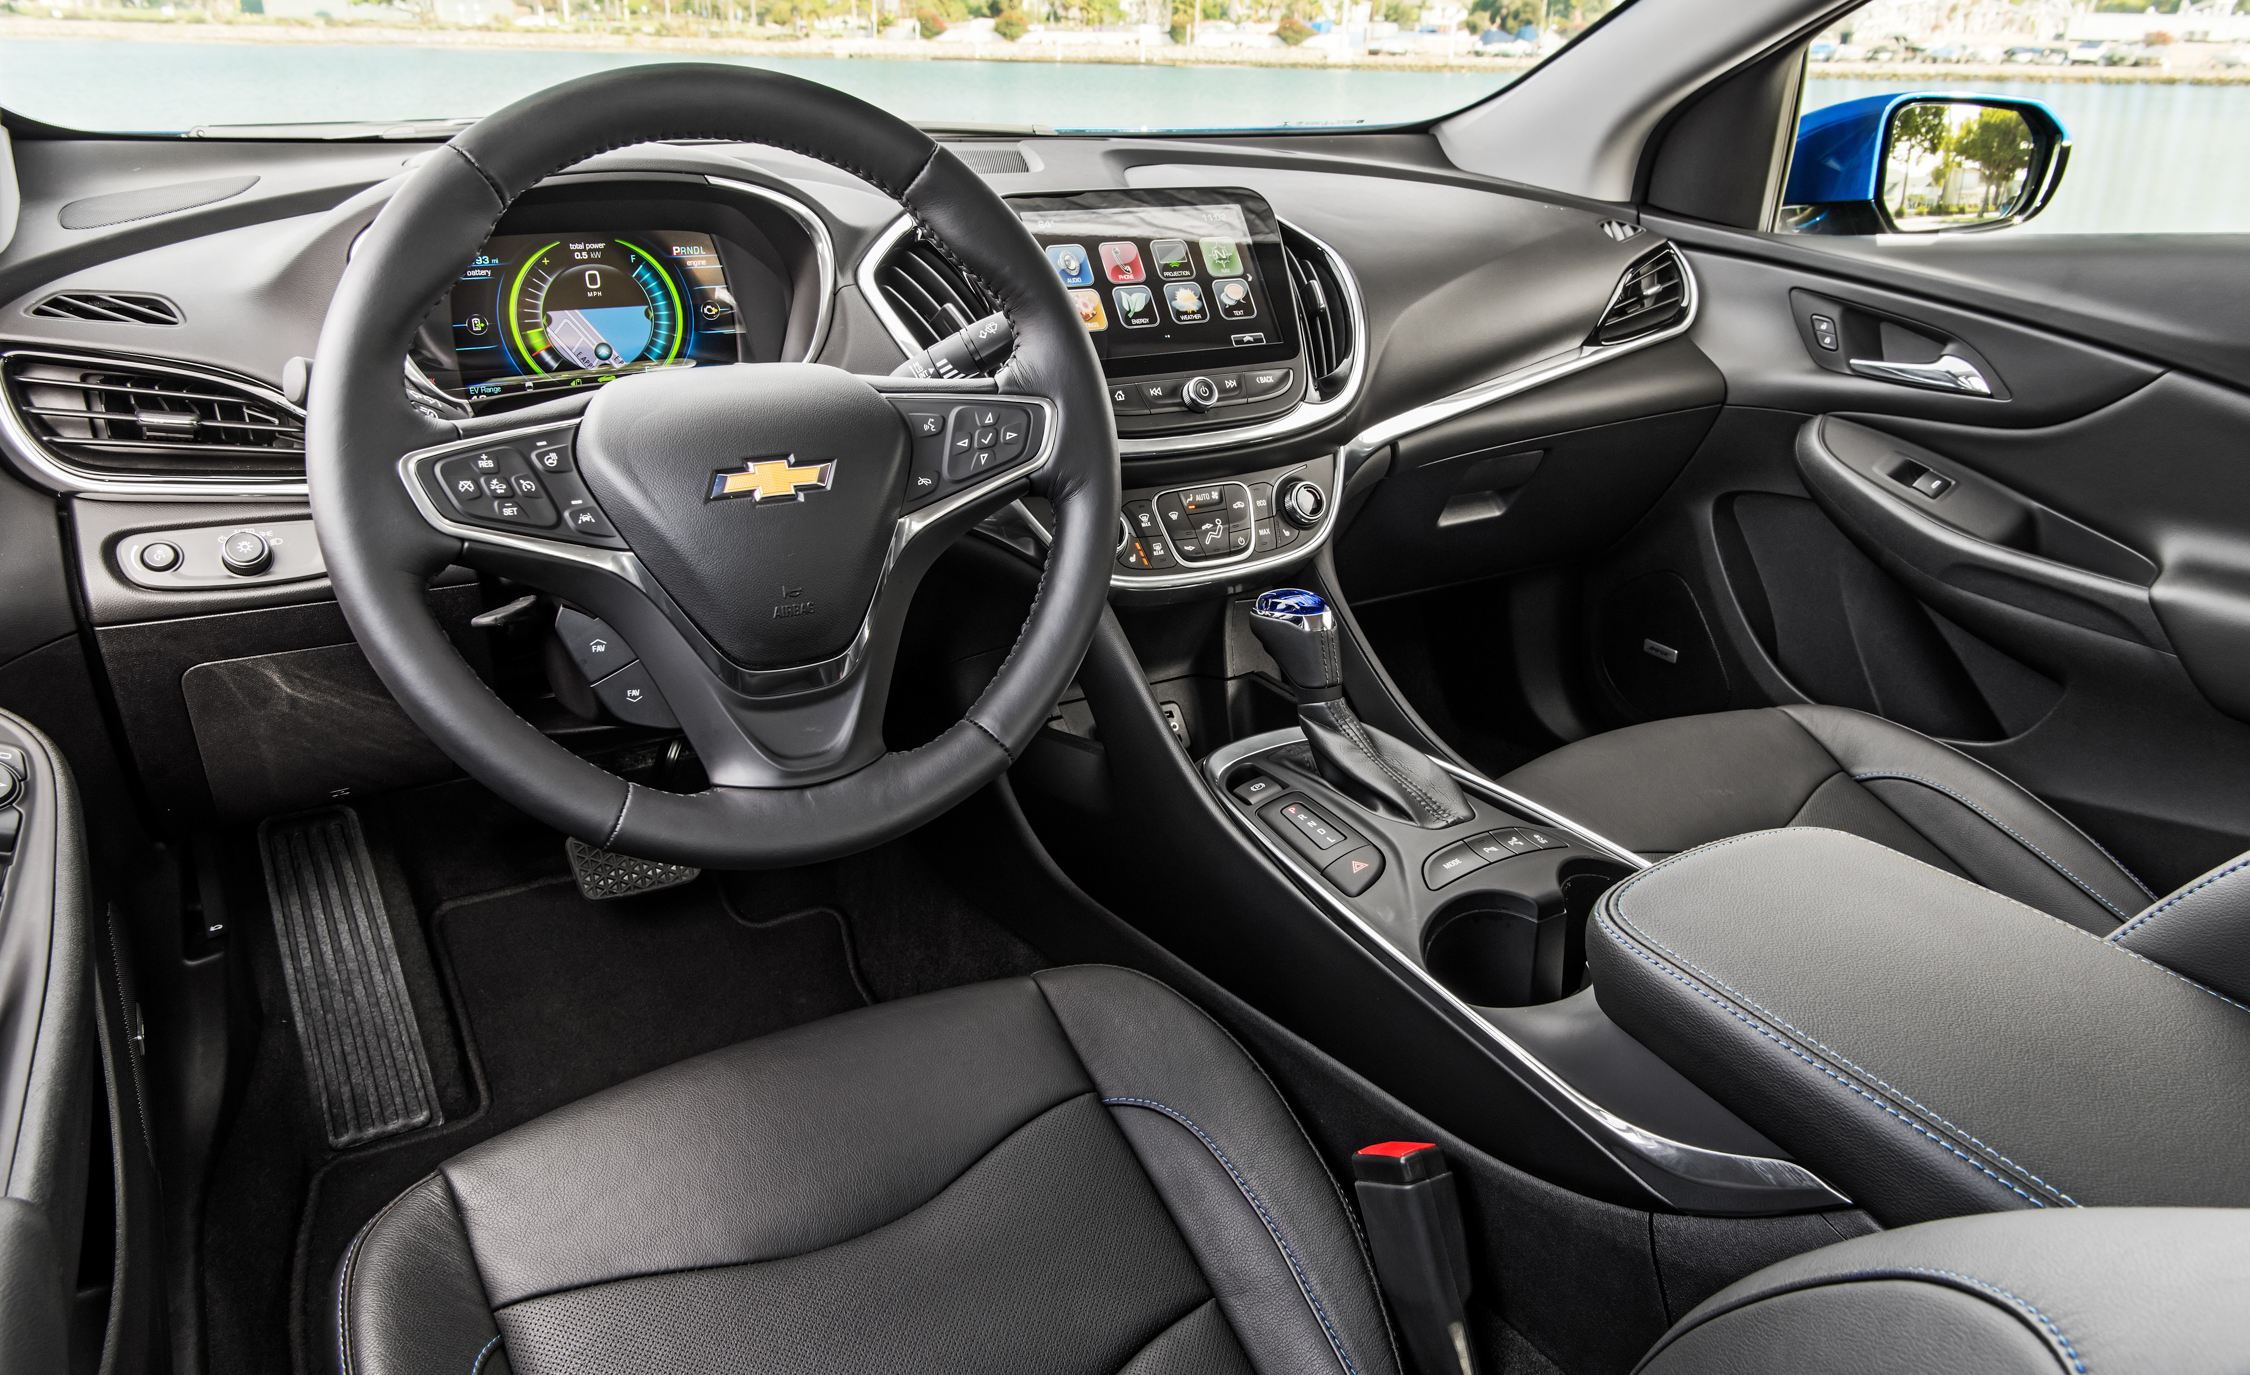 2017 Chevrolet Volt Interior Dashboard And Steering (Photo 9 of 16)